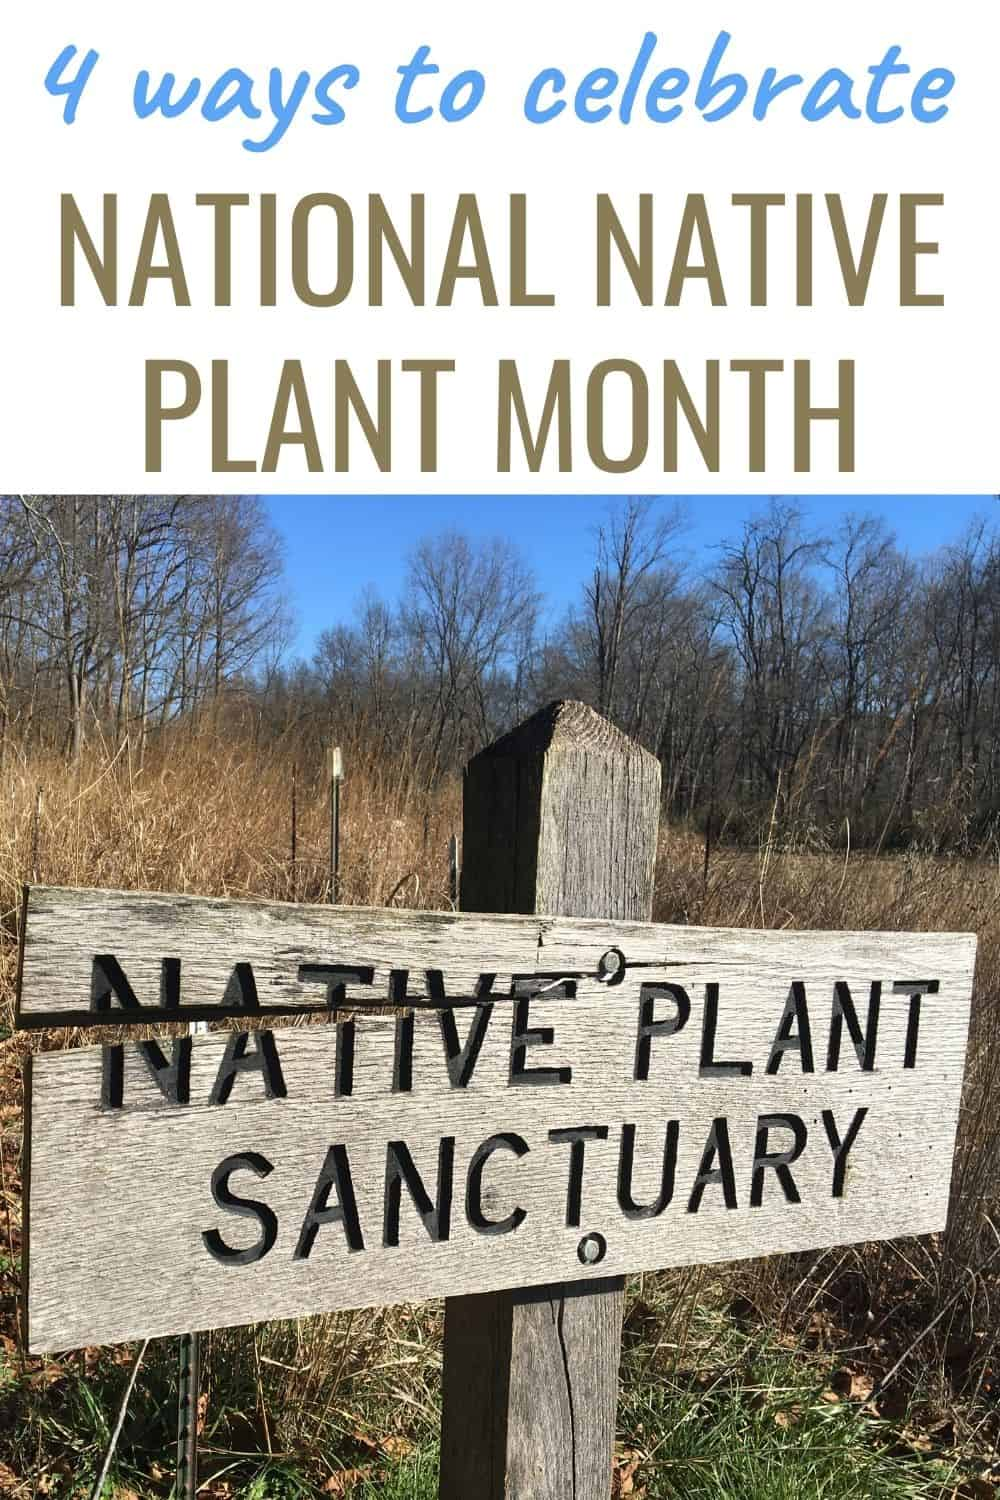 4 ways to celebrate National Native Plant Month